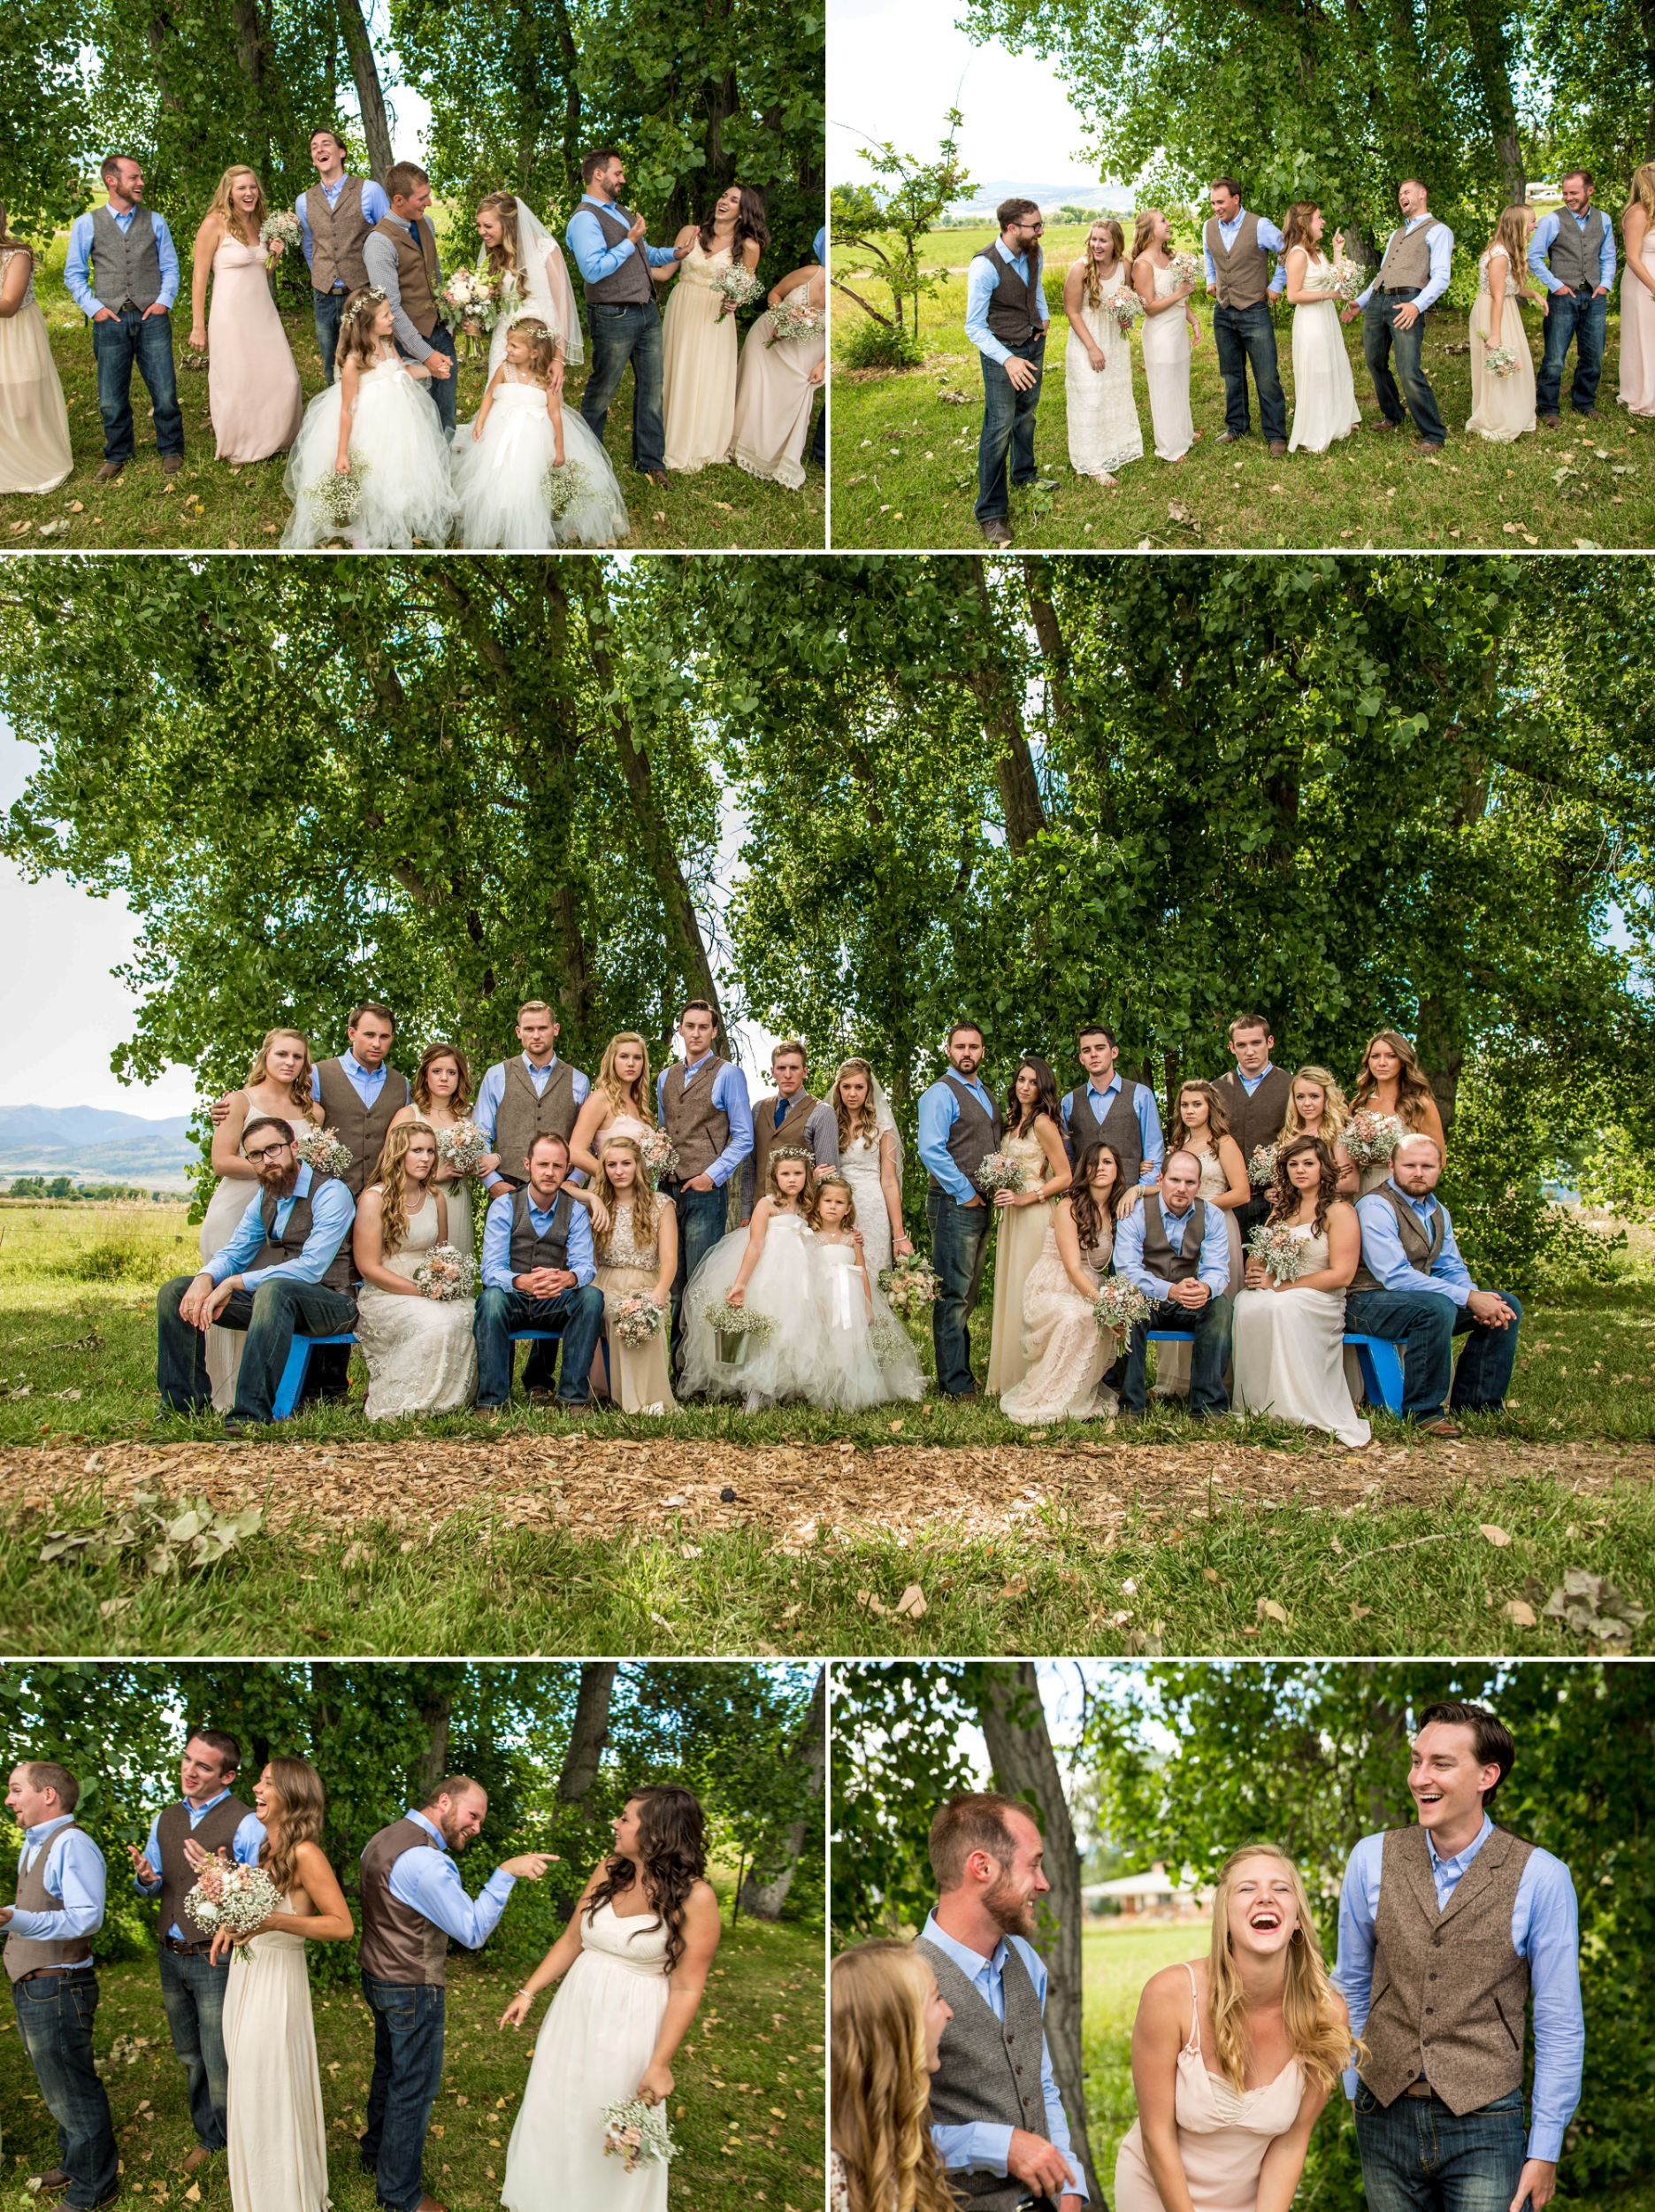 Having fun with a large wedding party!